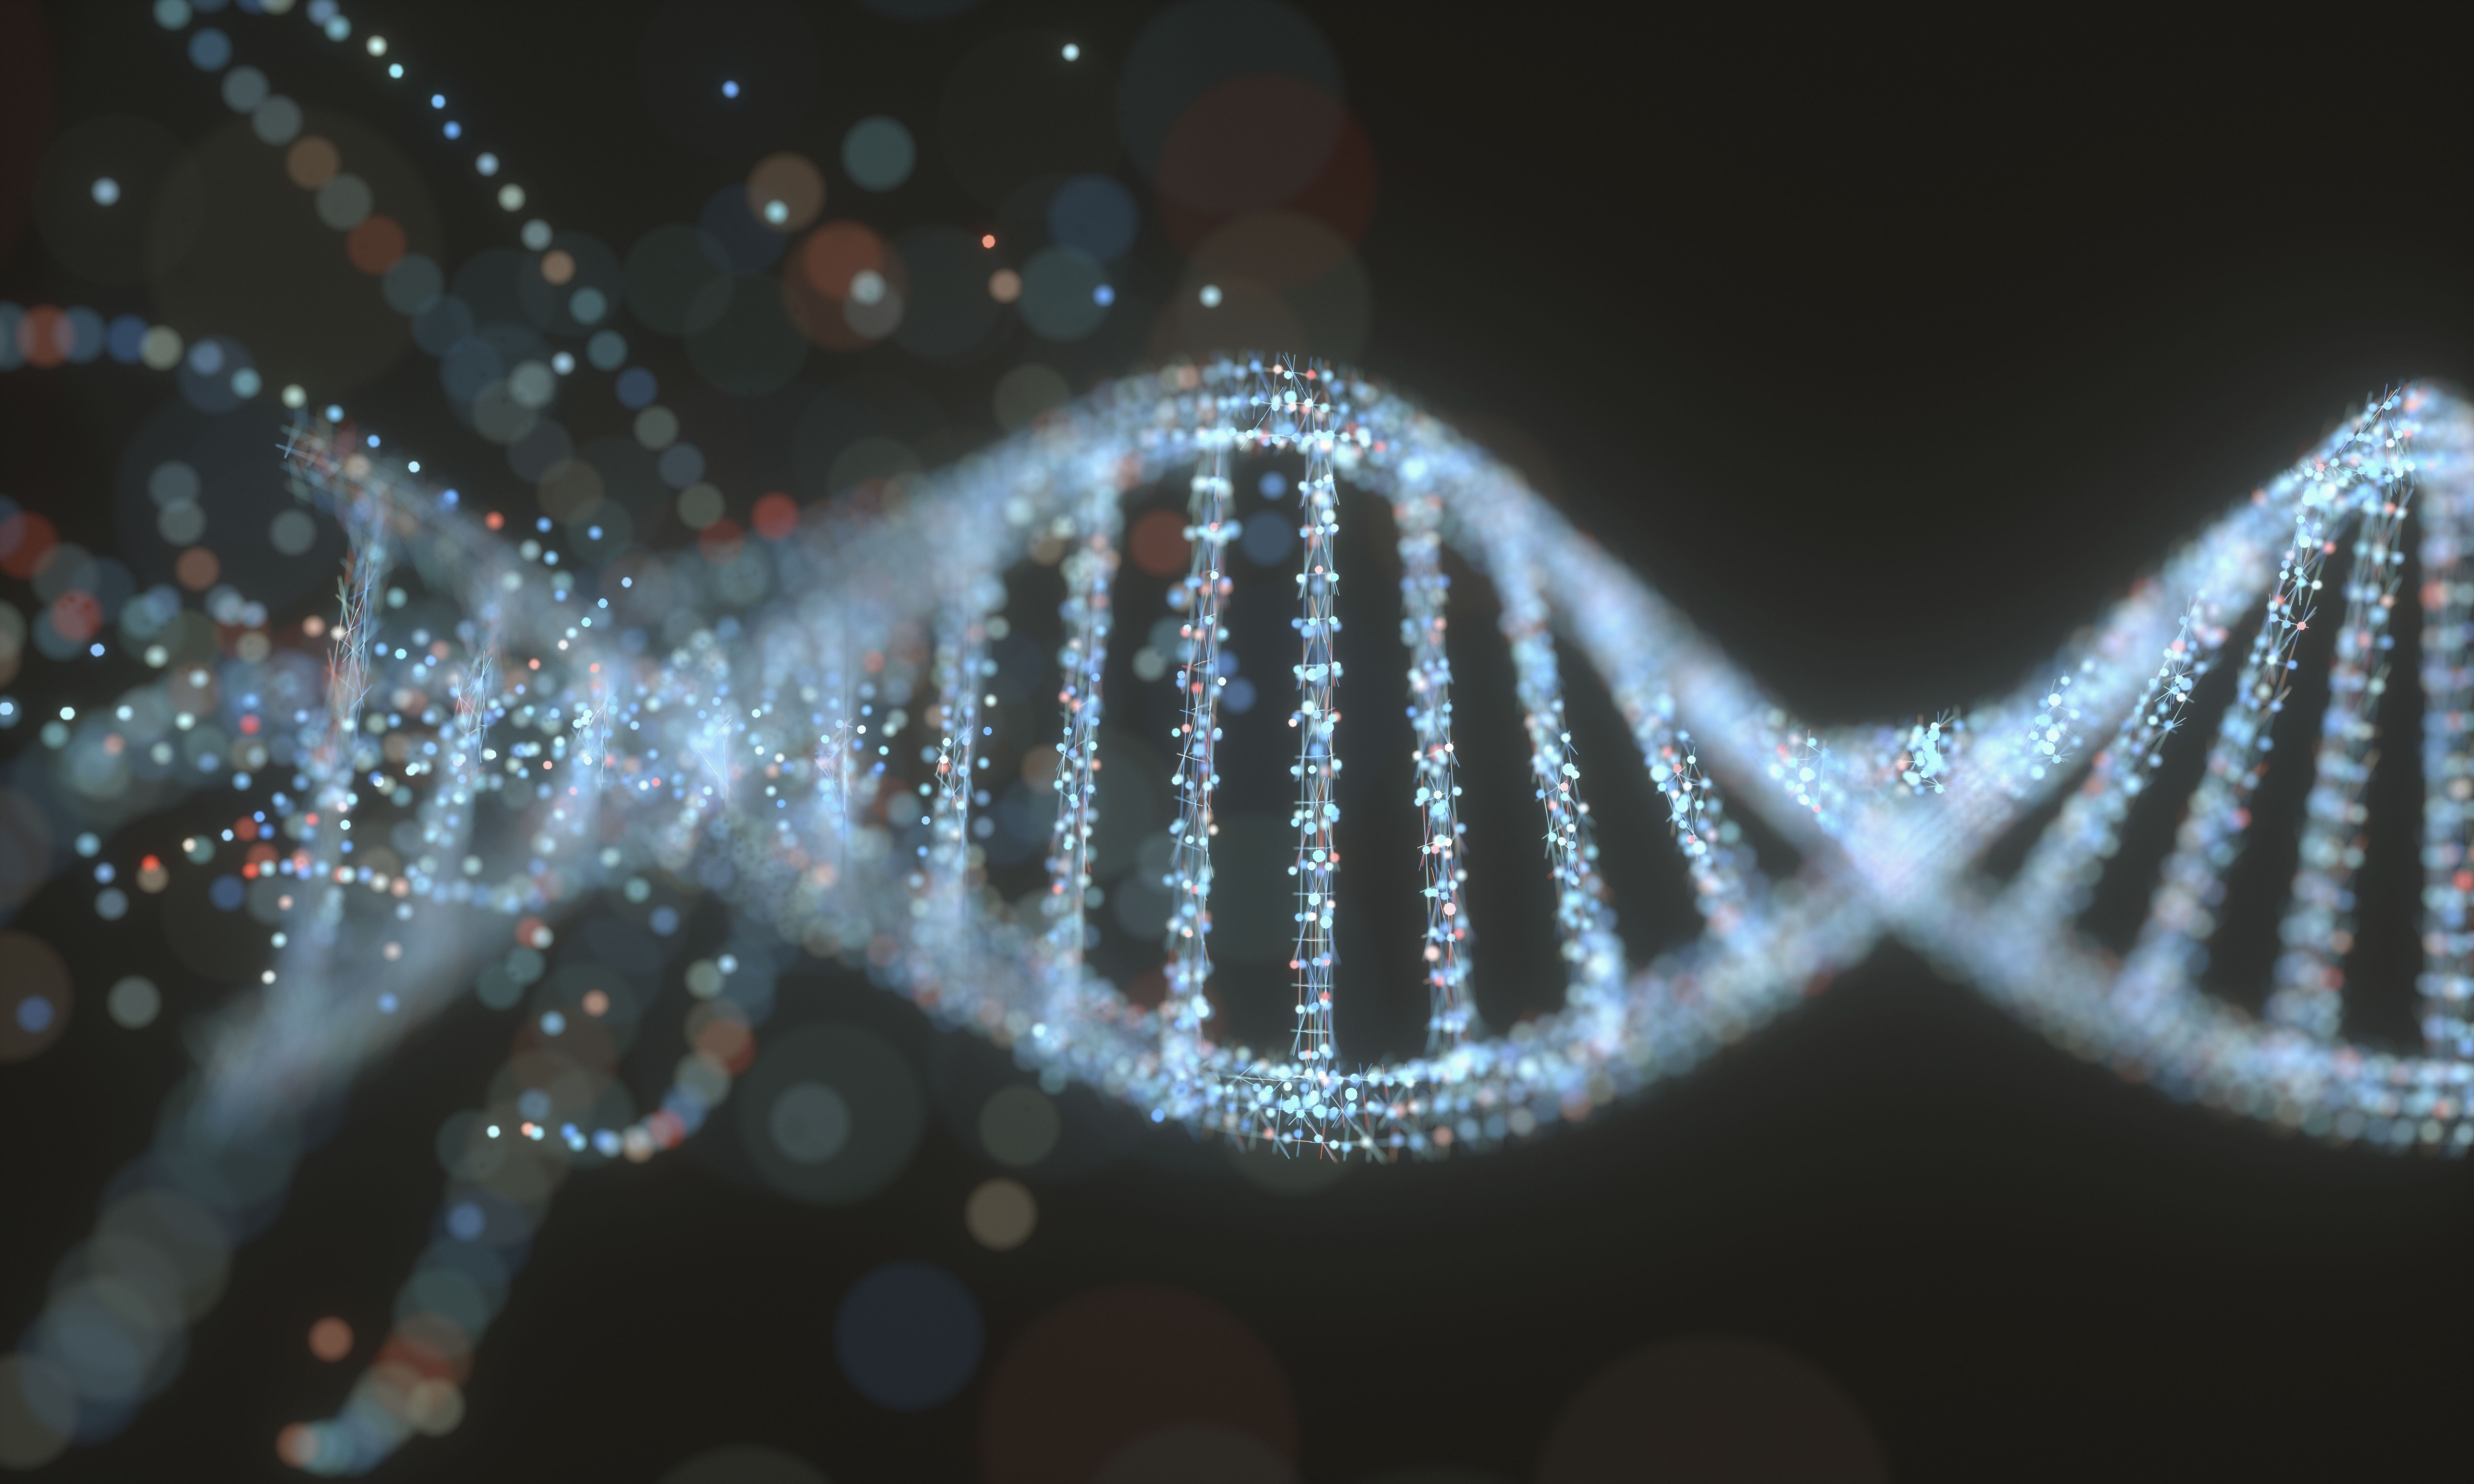 5 Common Dyes for Visualizing and Staining DNA